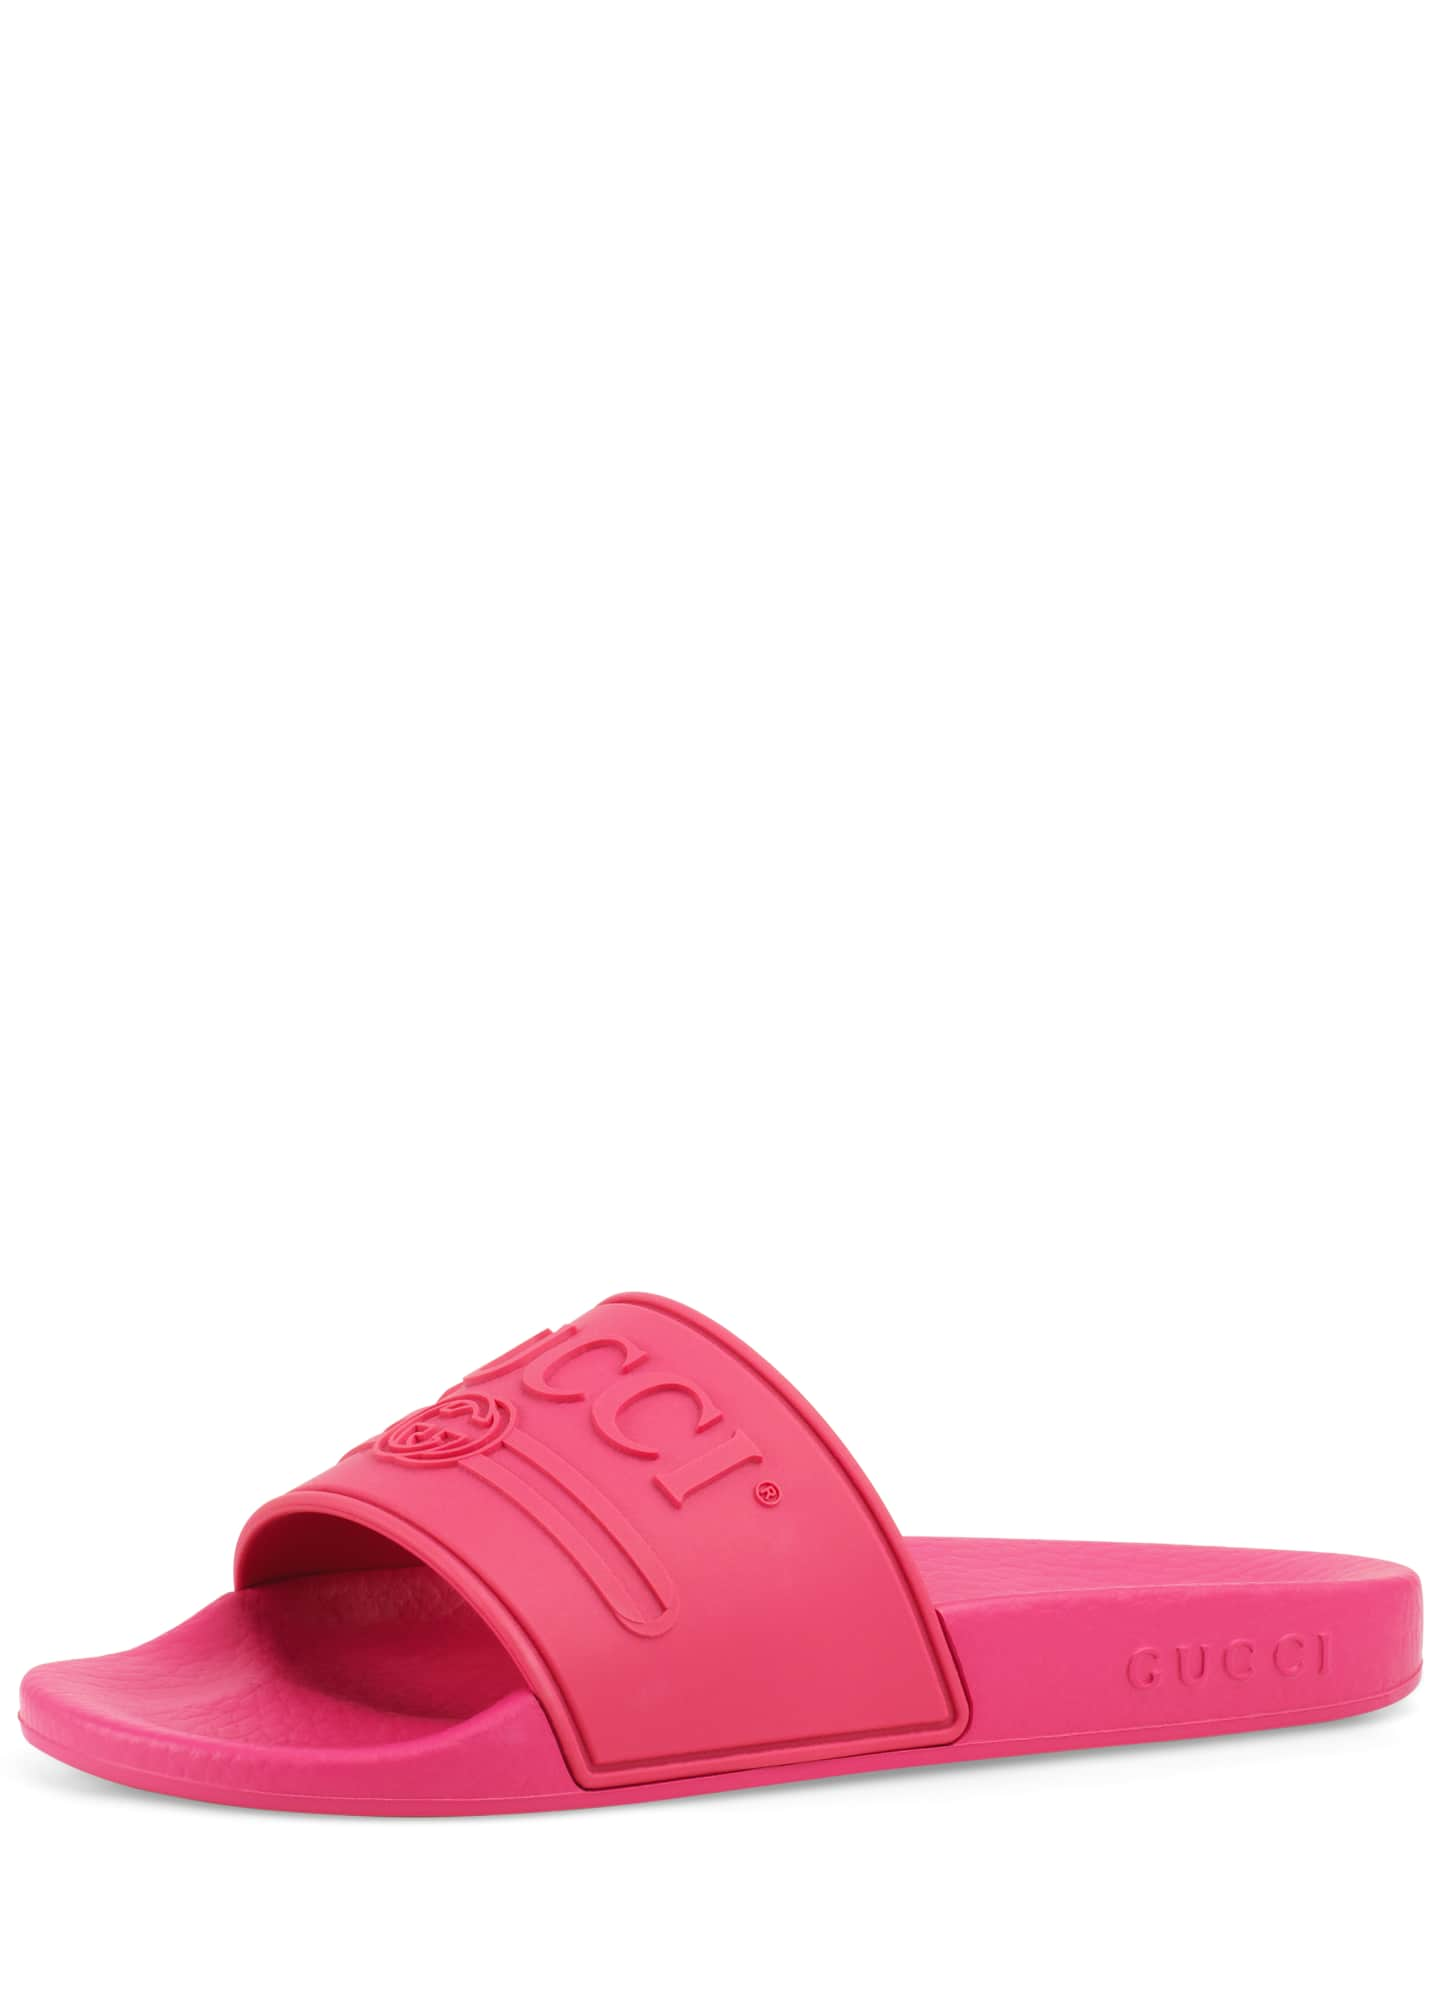 Image 1 of 1: Pursuit Gucci Rubber Slide Sandals, Toddler/Kids